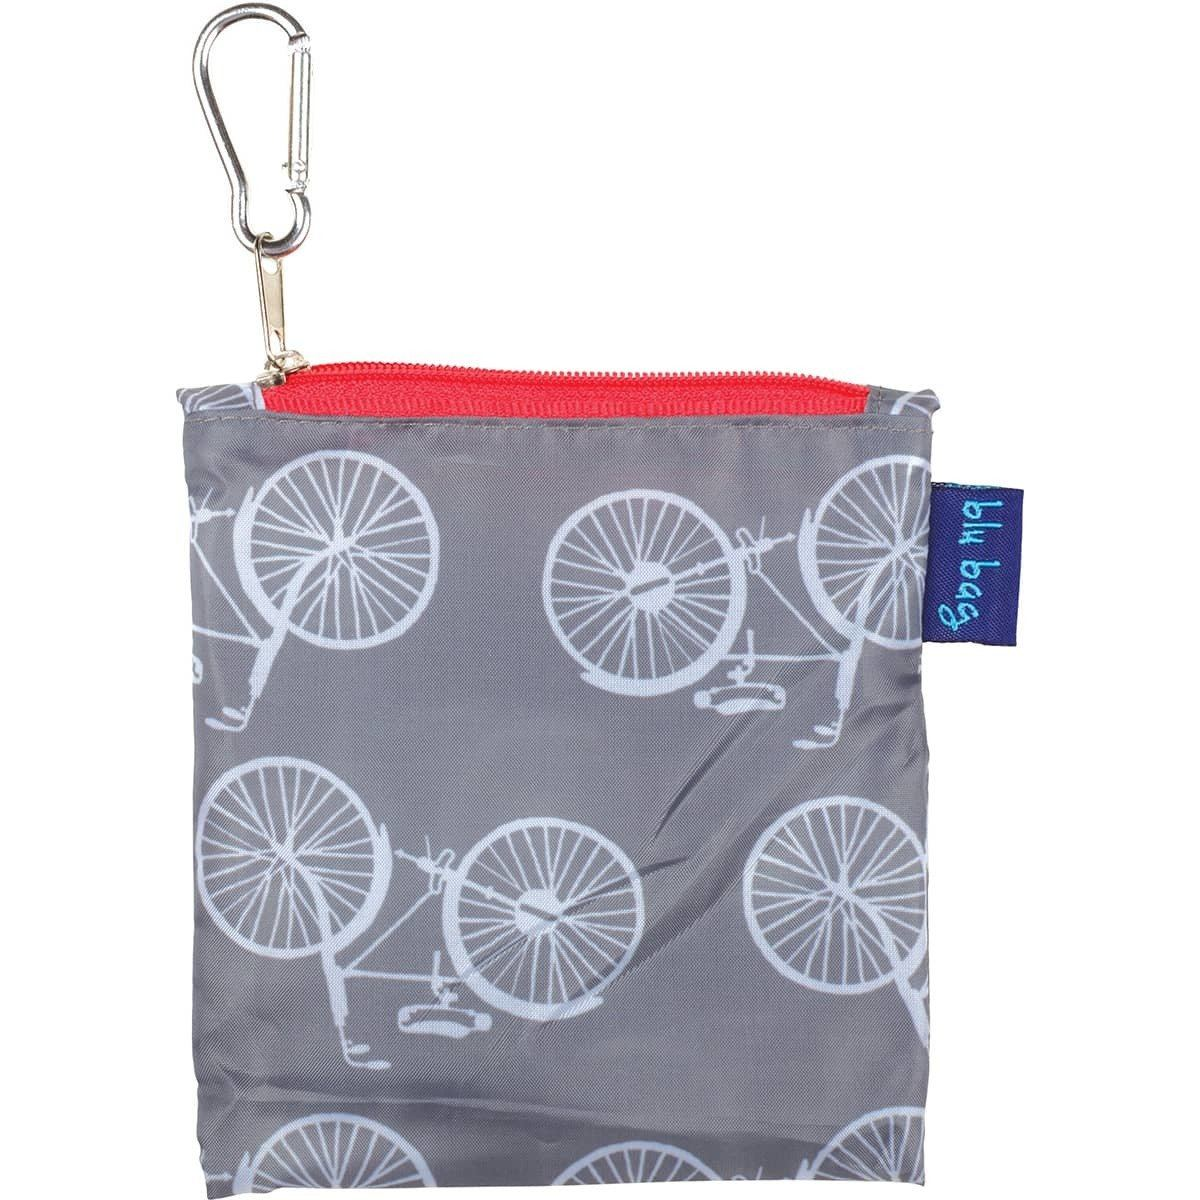 Summer Bikes Grey Blu Bag Reusable Shopping Bag - rockflowerpaper LLC